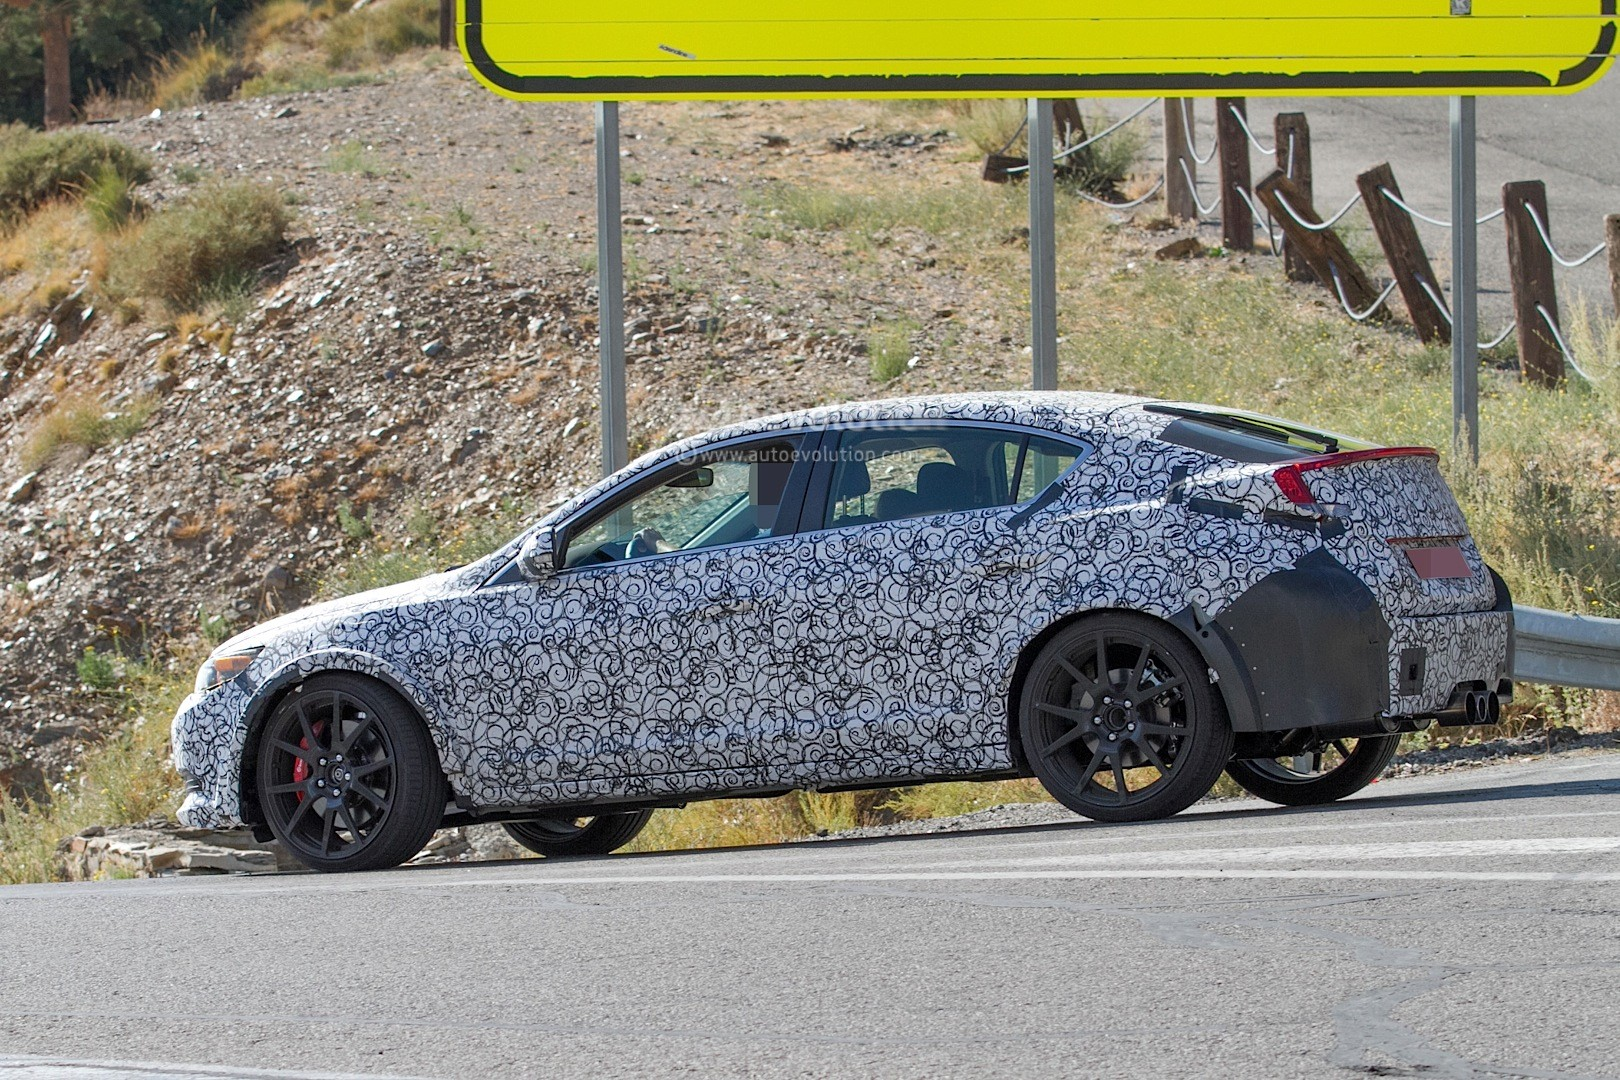 ... Price likewise Peugeot 208 GTI also 2016 Acura ILX. on acura ilx front